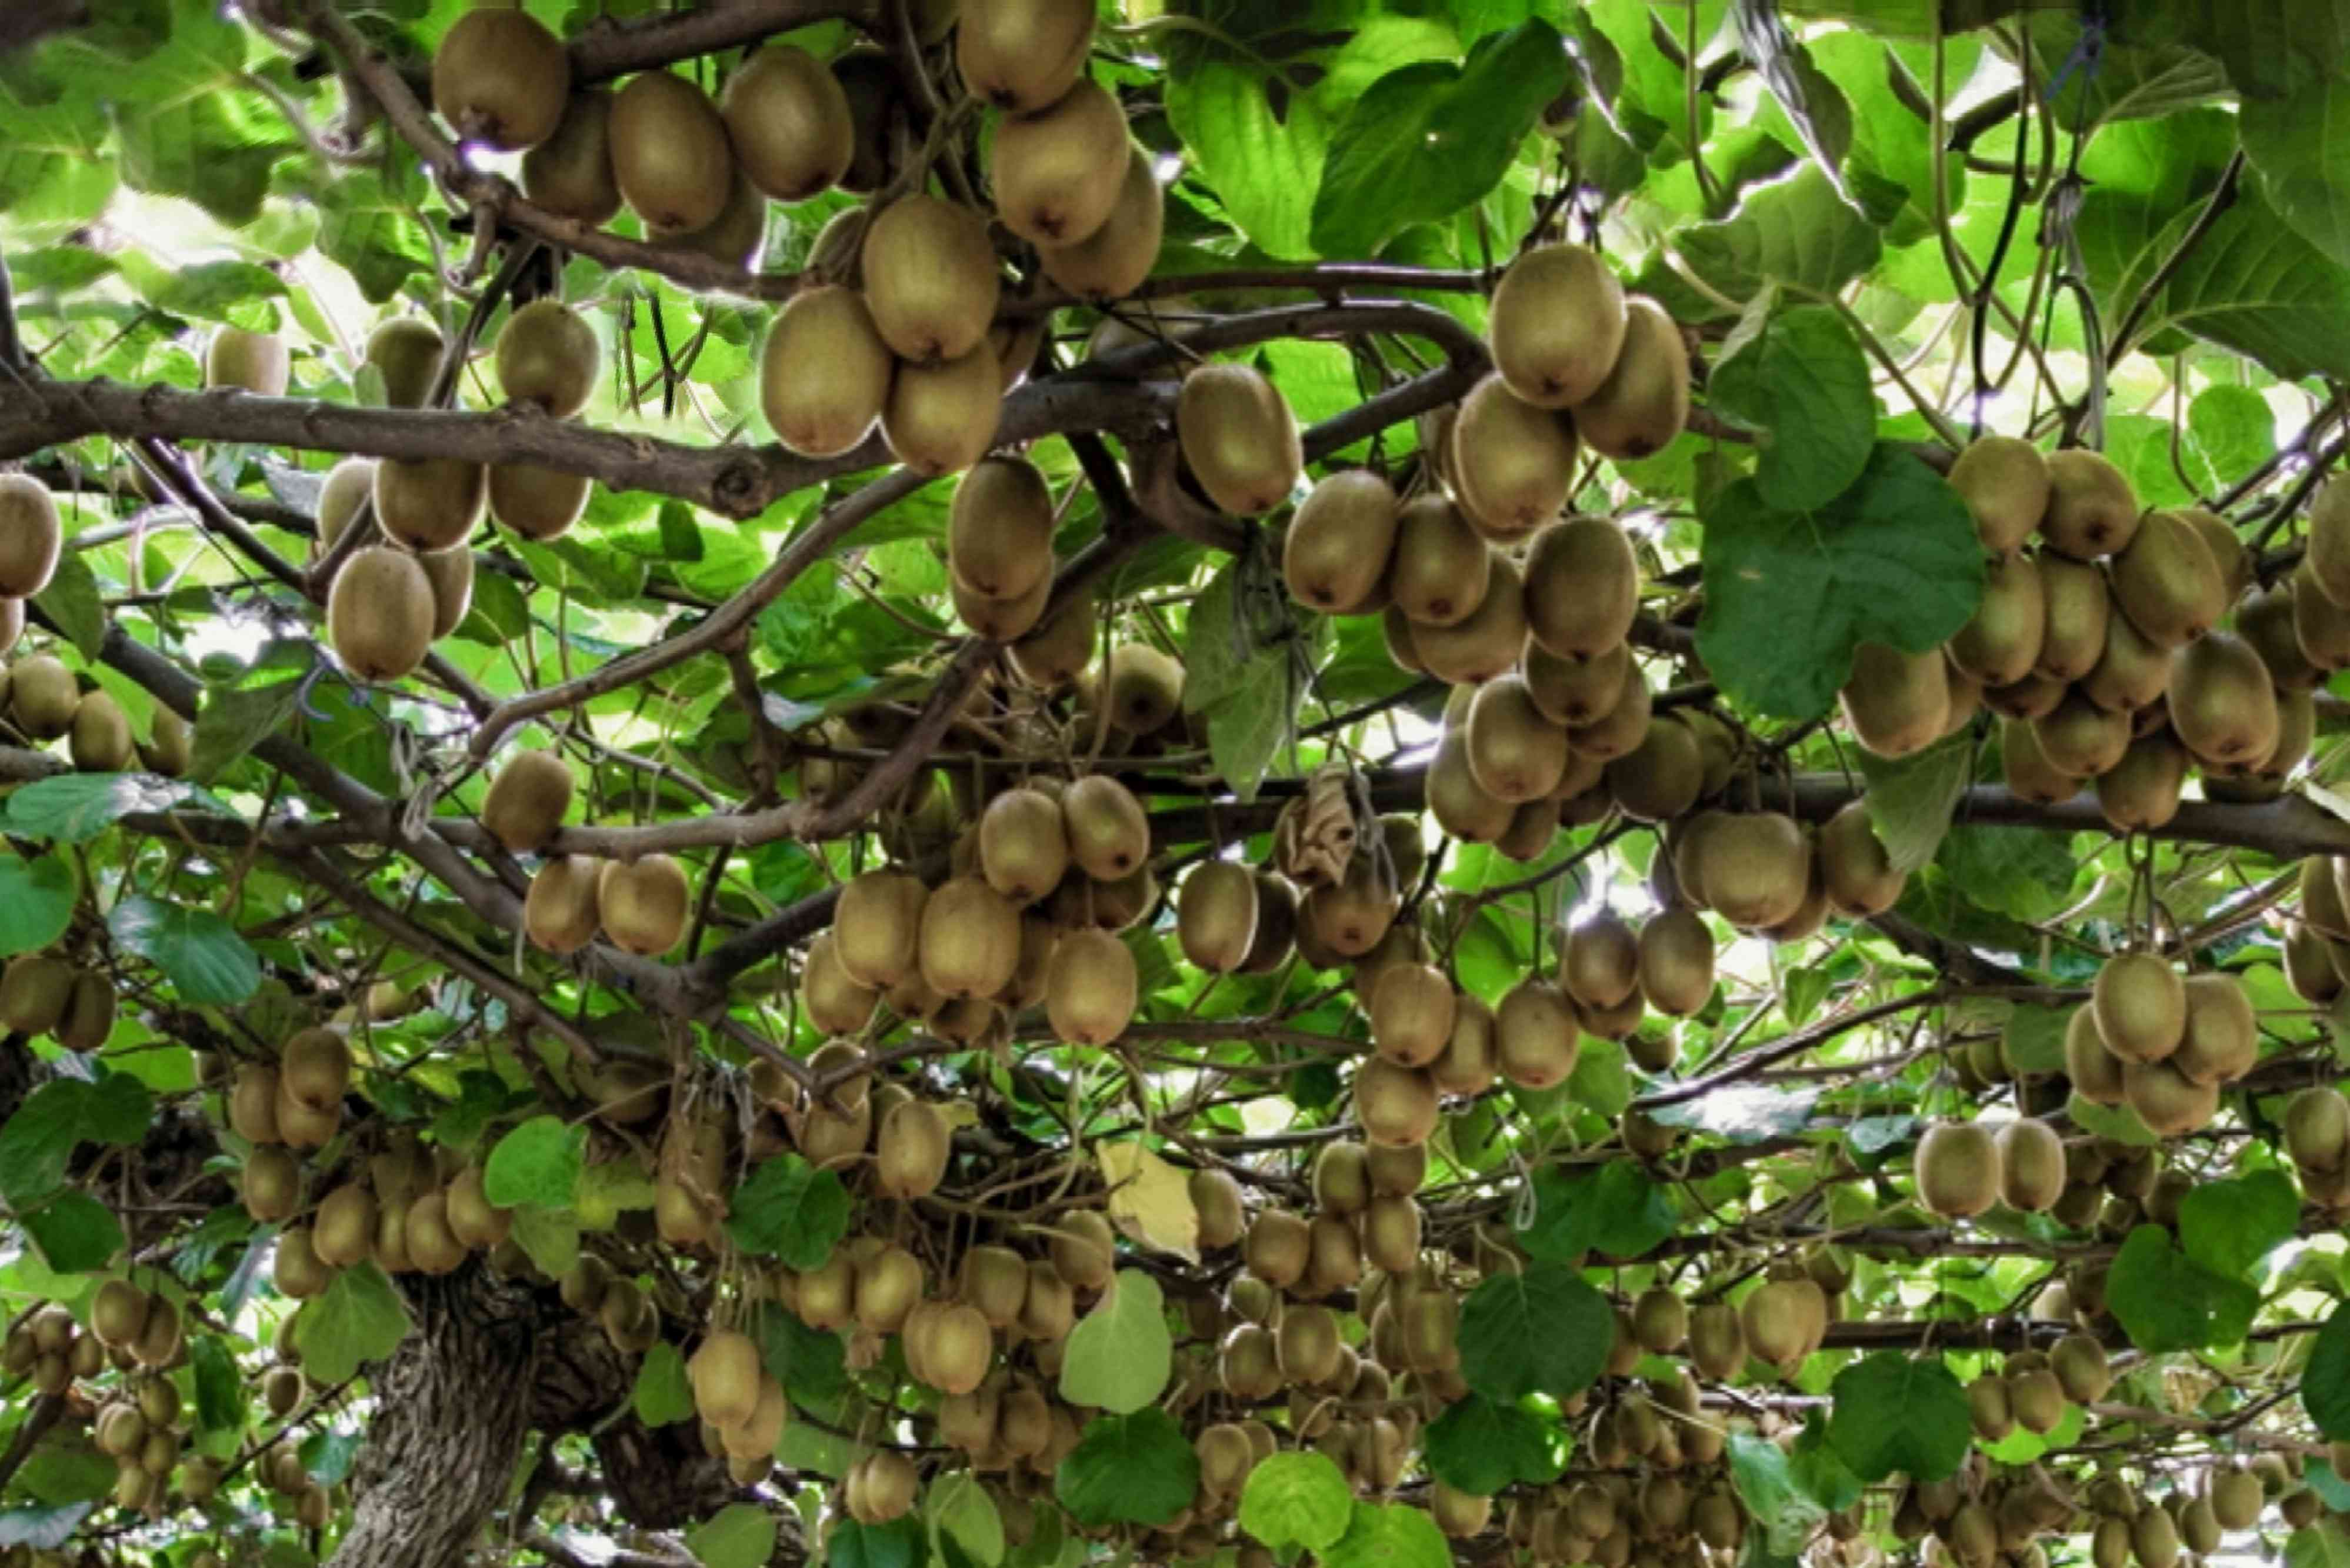 Brown kiwifruit hanging from woody vines and leaves